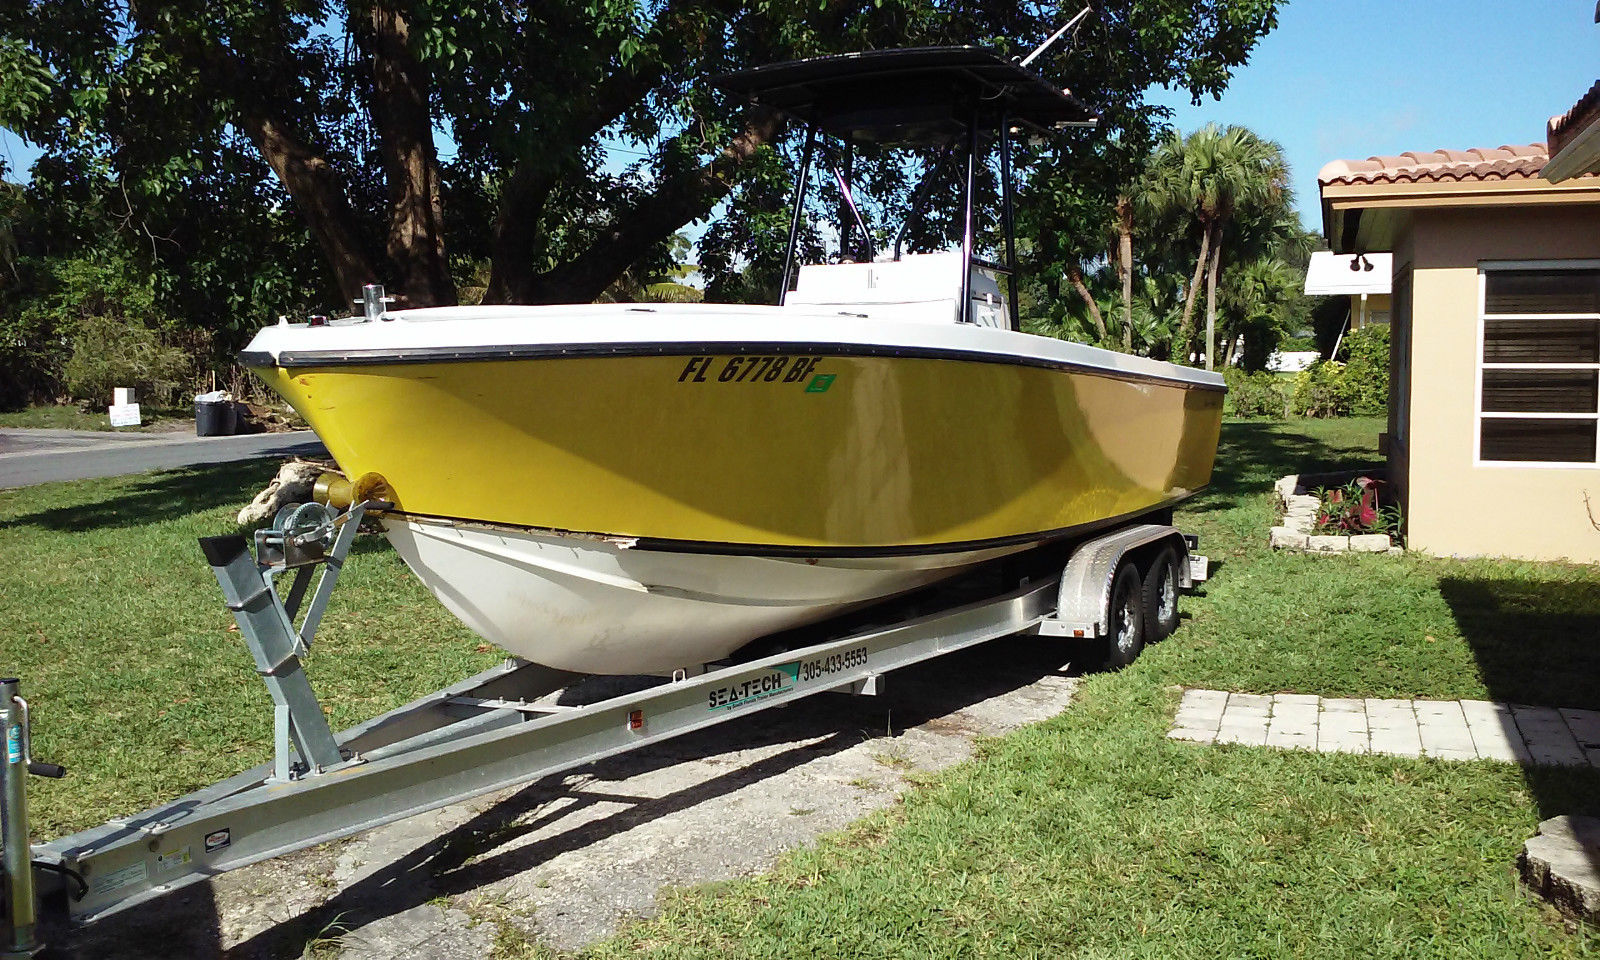 1974 formula center console open fisherman outboard for Center console fishing boats for sale